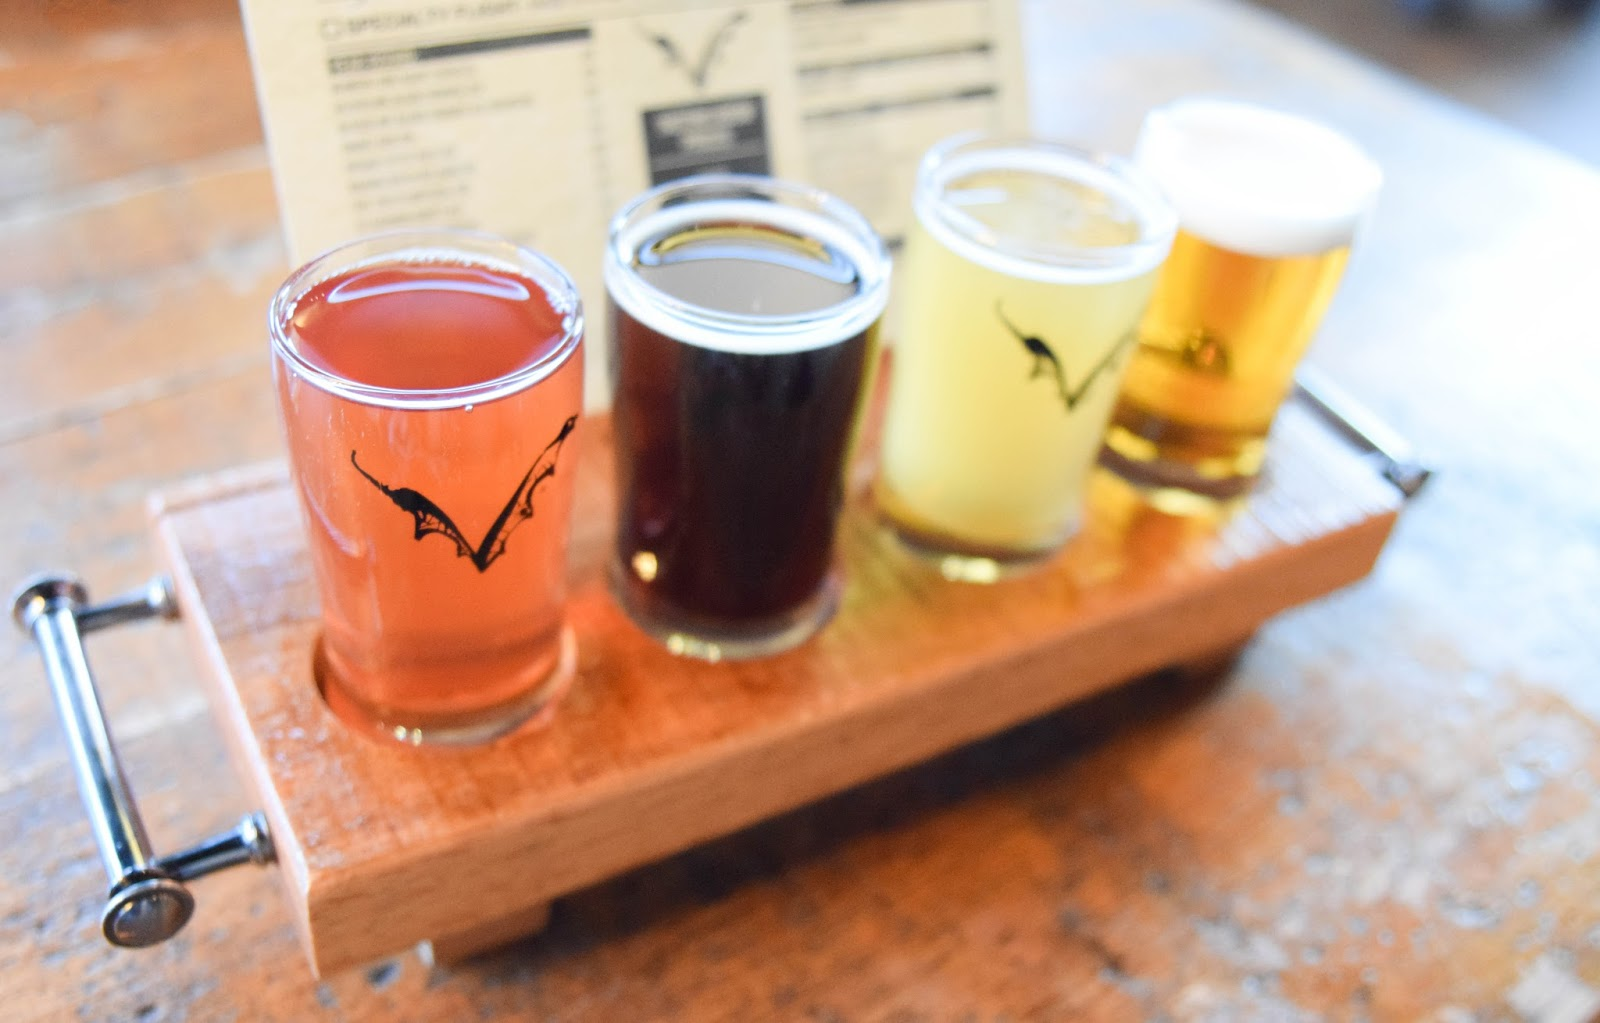 frederick maryland travel guide - visit frederick - frederick maryland brewery - flying dog brewery